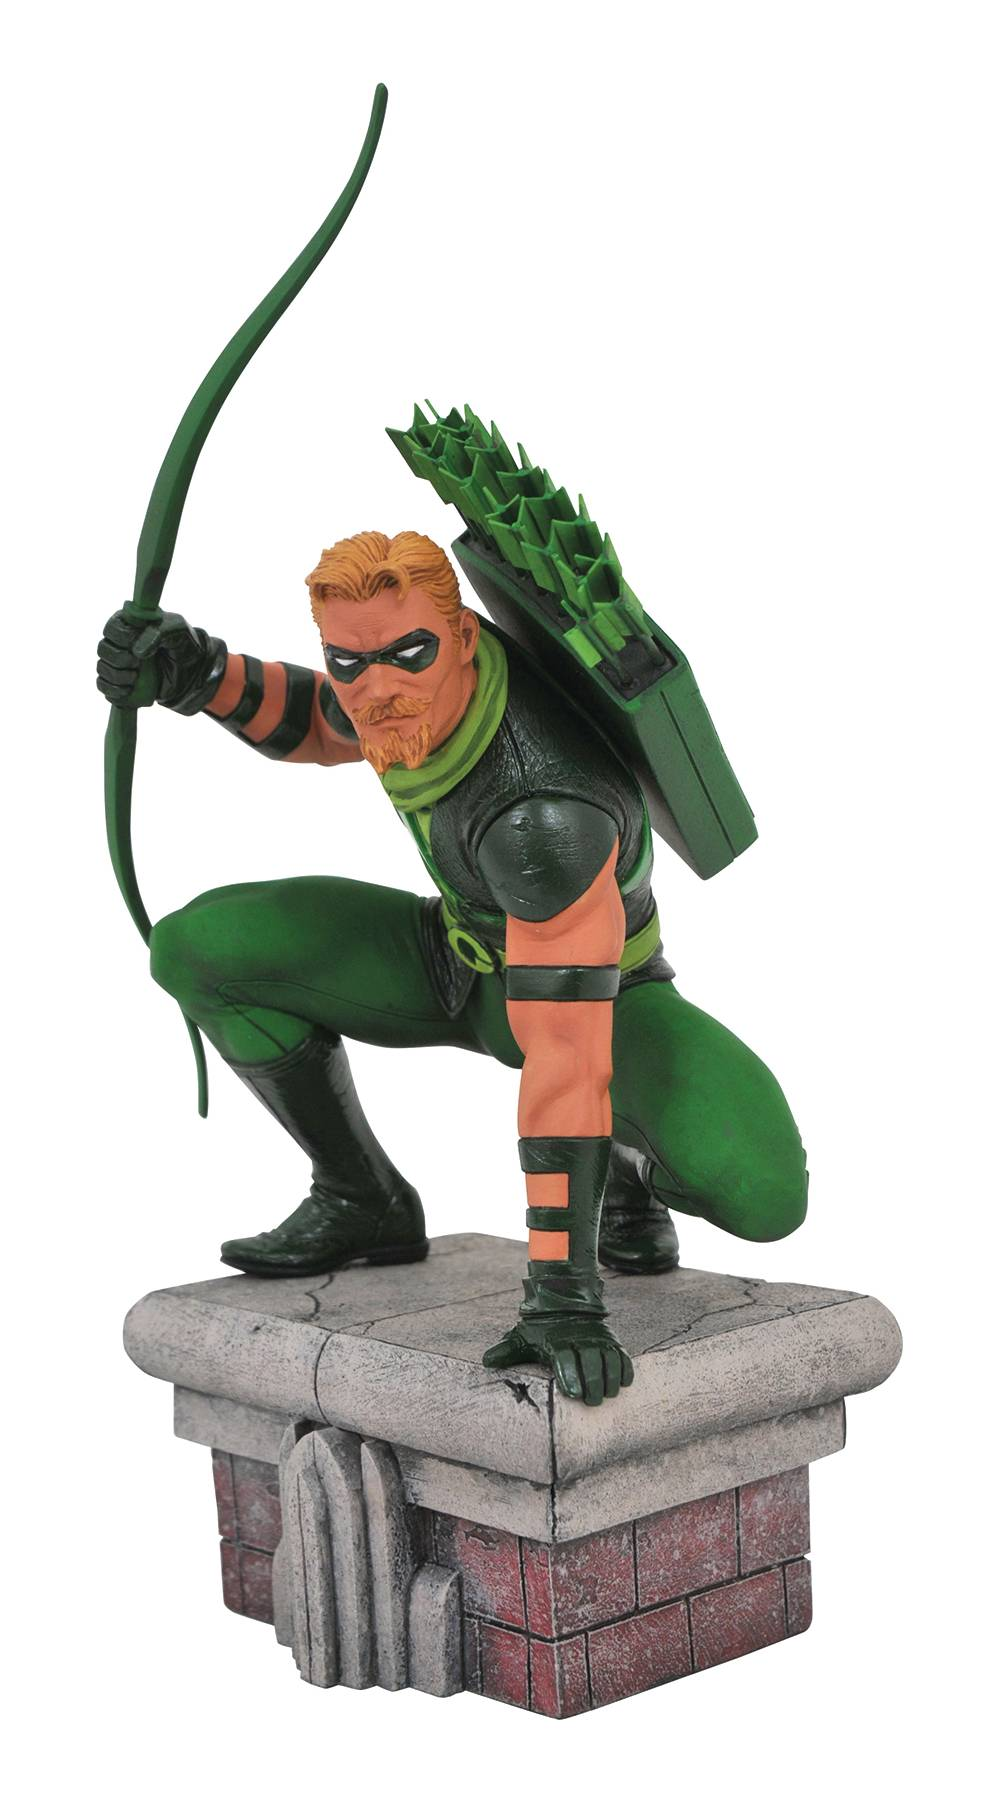 DC GALLERY GREEN ARROW COMIC PVC FIGURE